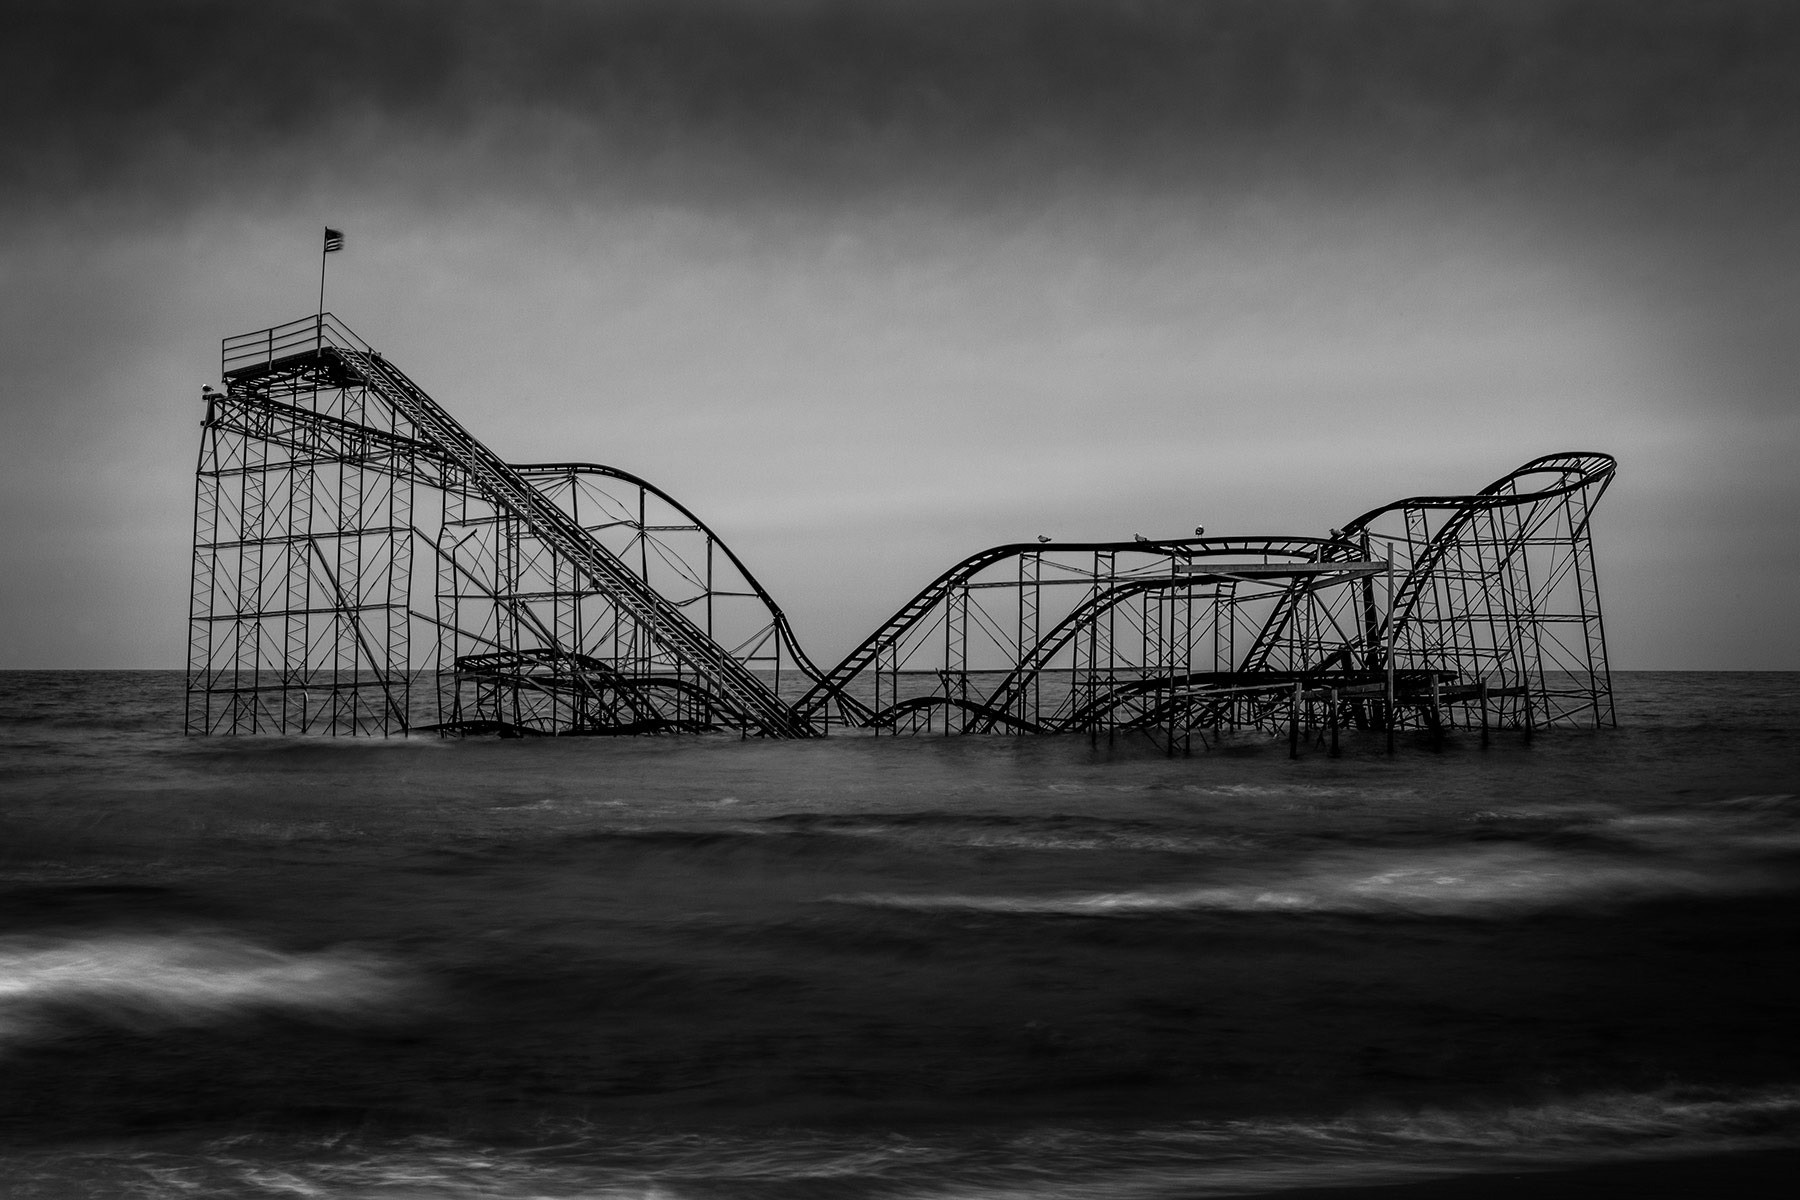 clarkography.com's photo of Casino Pier